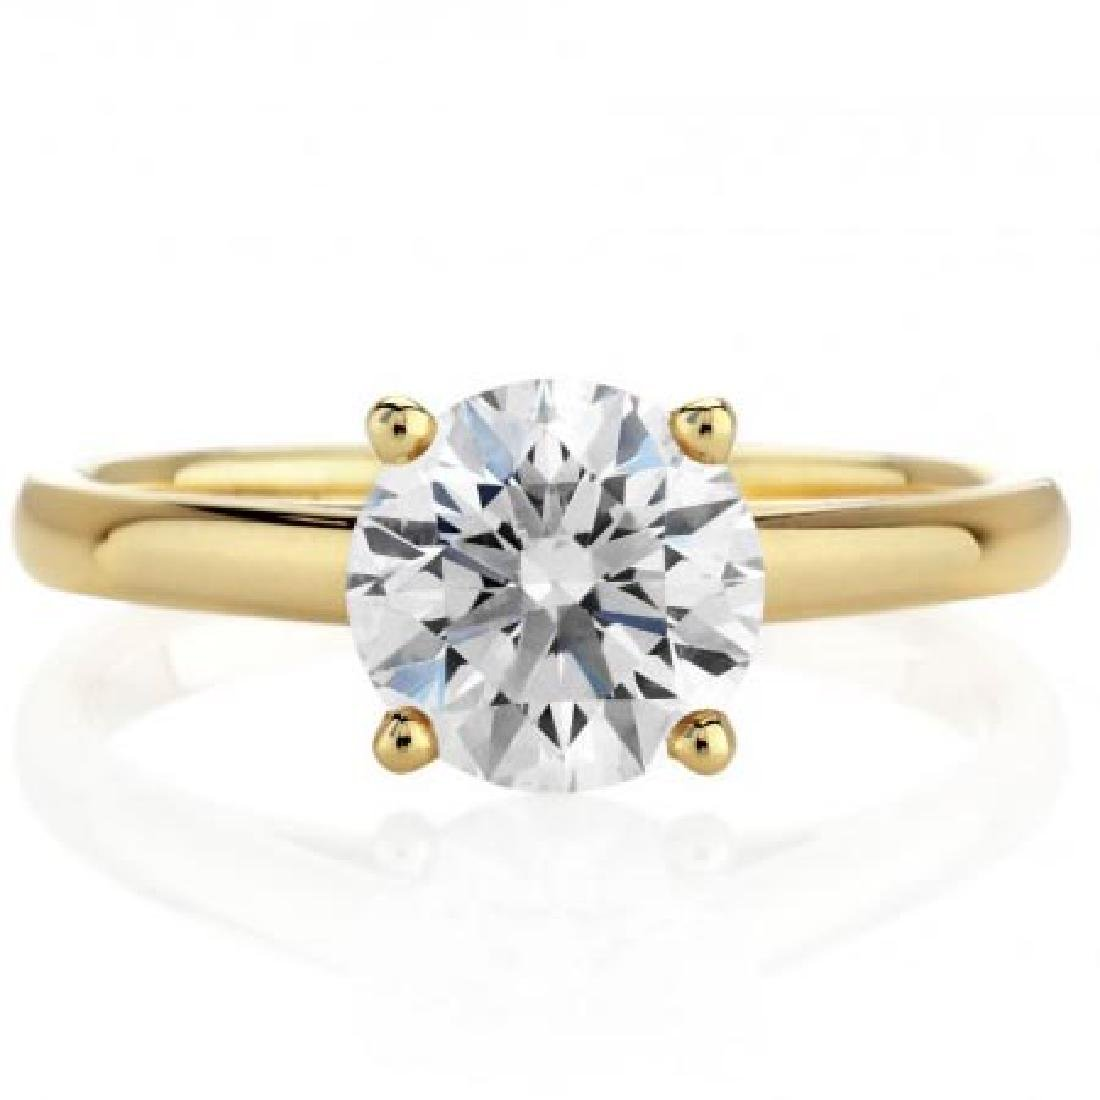 CERTIFIED 1 CTW ROUND H/SI1 SOLITAIRE RING IN 14K YELLO